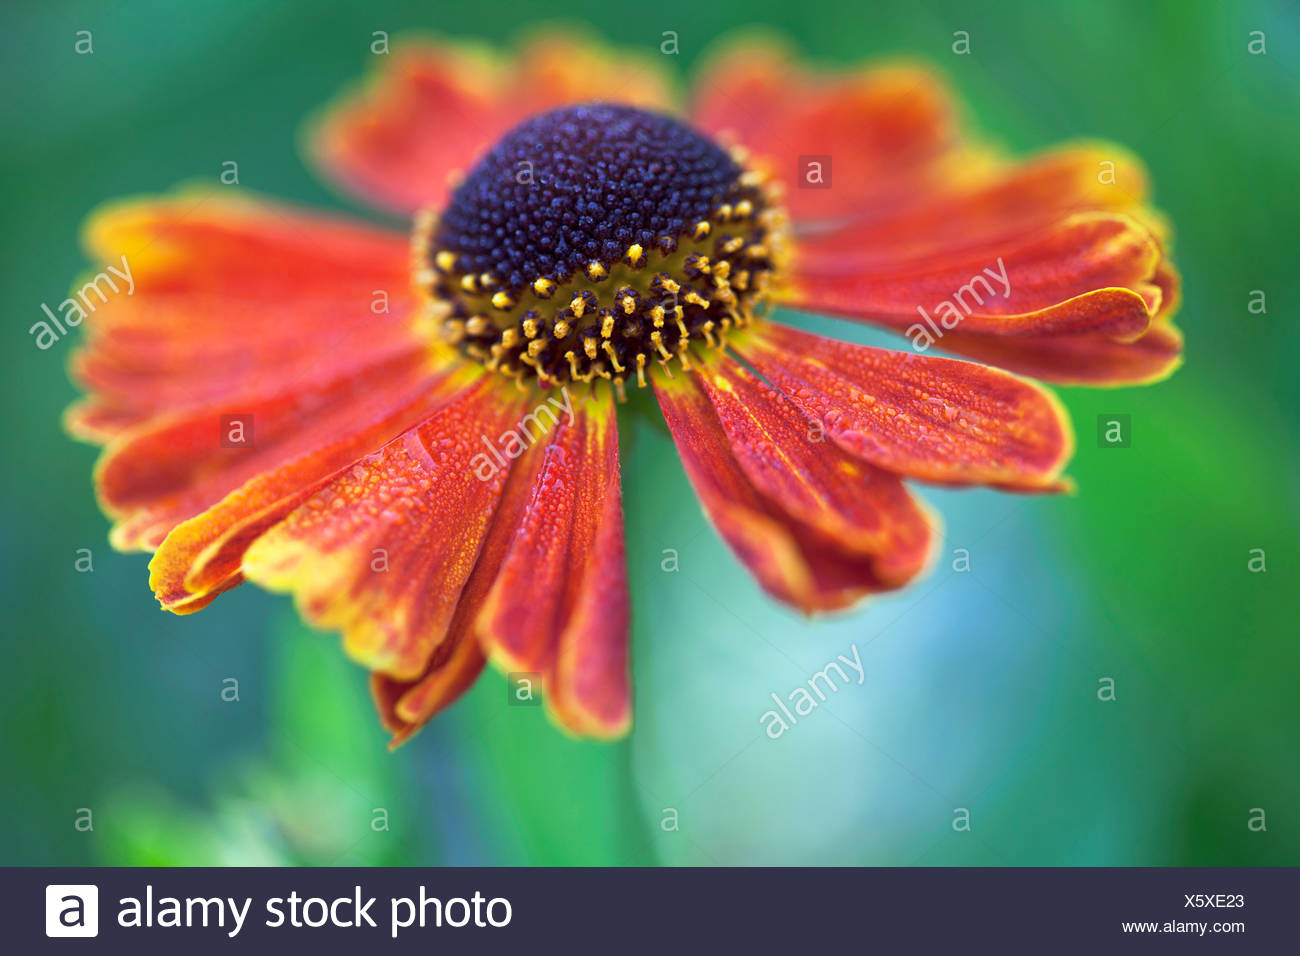 Helen's flower, Sneezeweed, Helenium 'Moerheim Beauty', Orange. - Stock Image